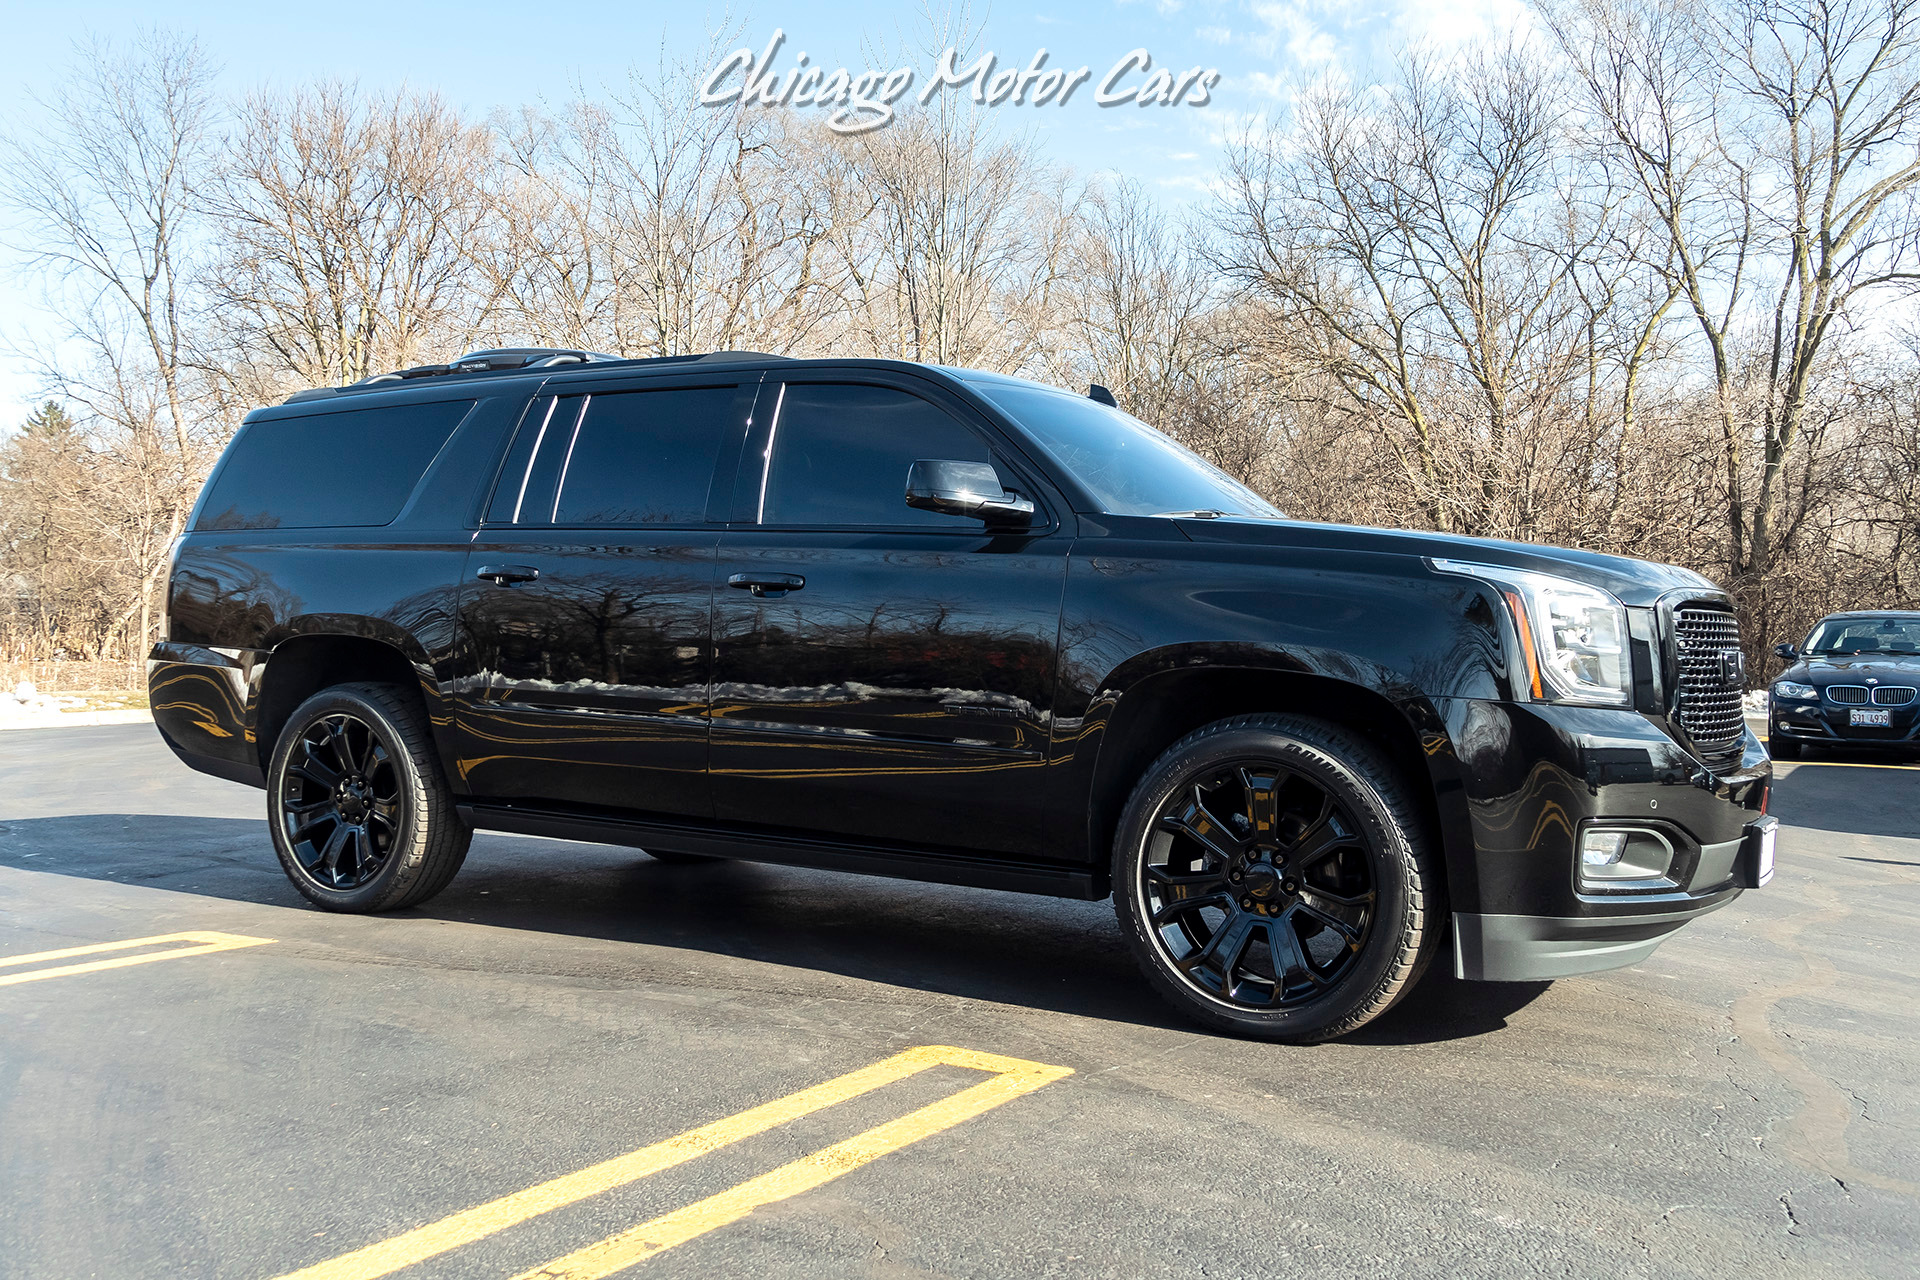 Used-2017-GMC-Yukon-XL-AWD-Denali-SUV-Custom-Executive-Build-for-Professional-Athletes